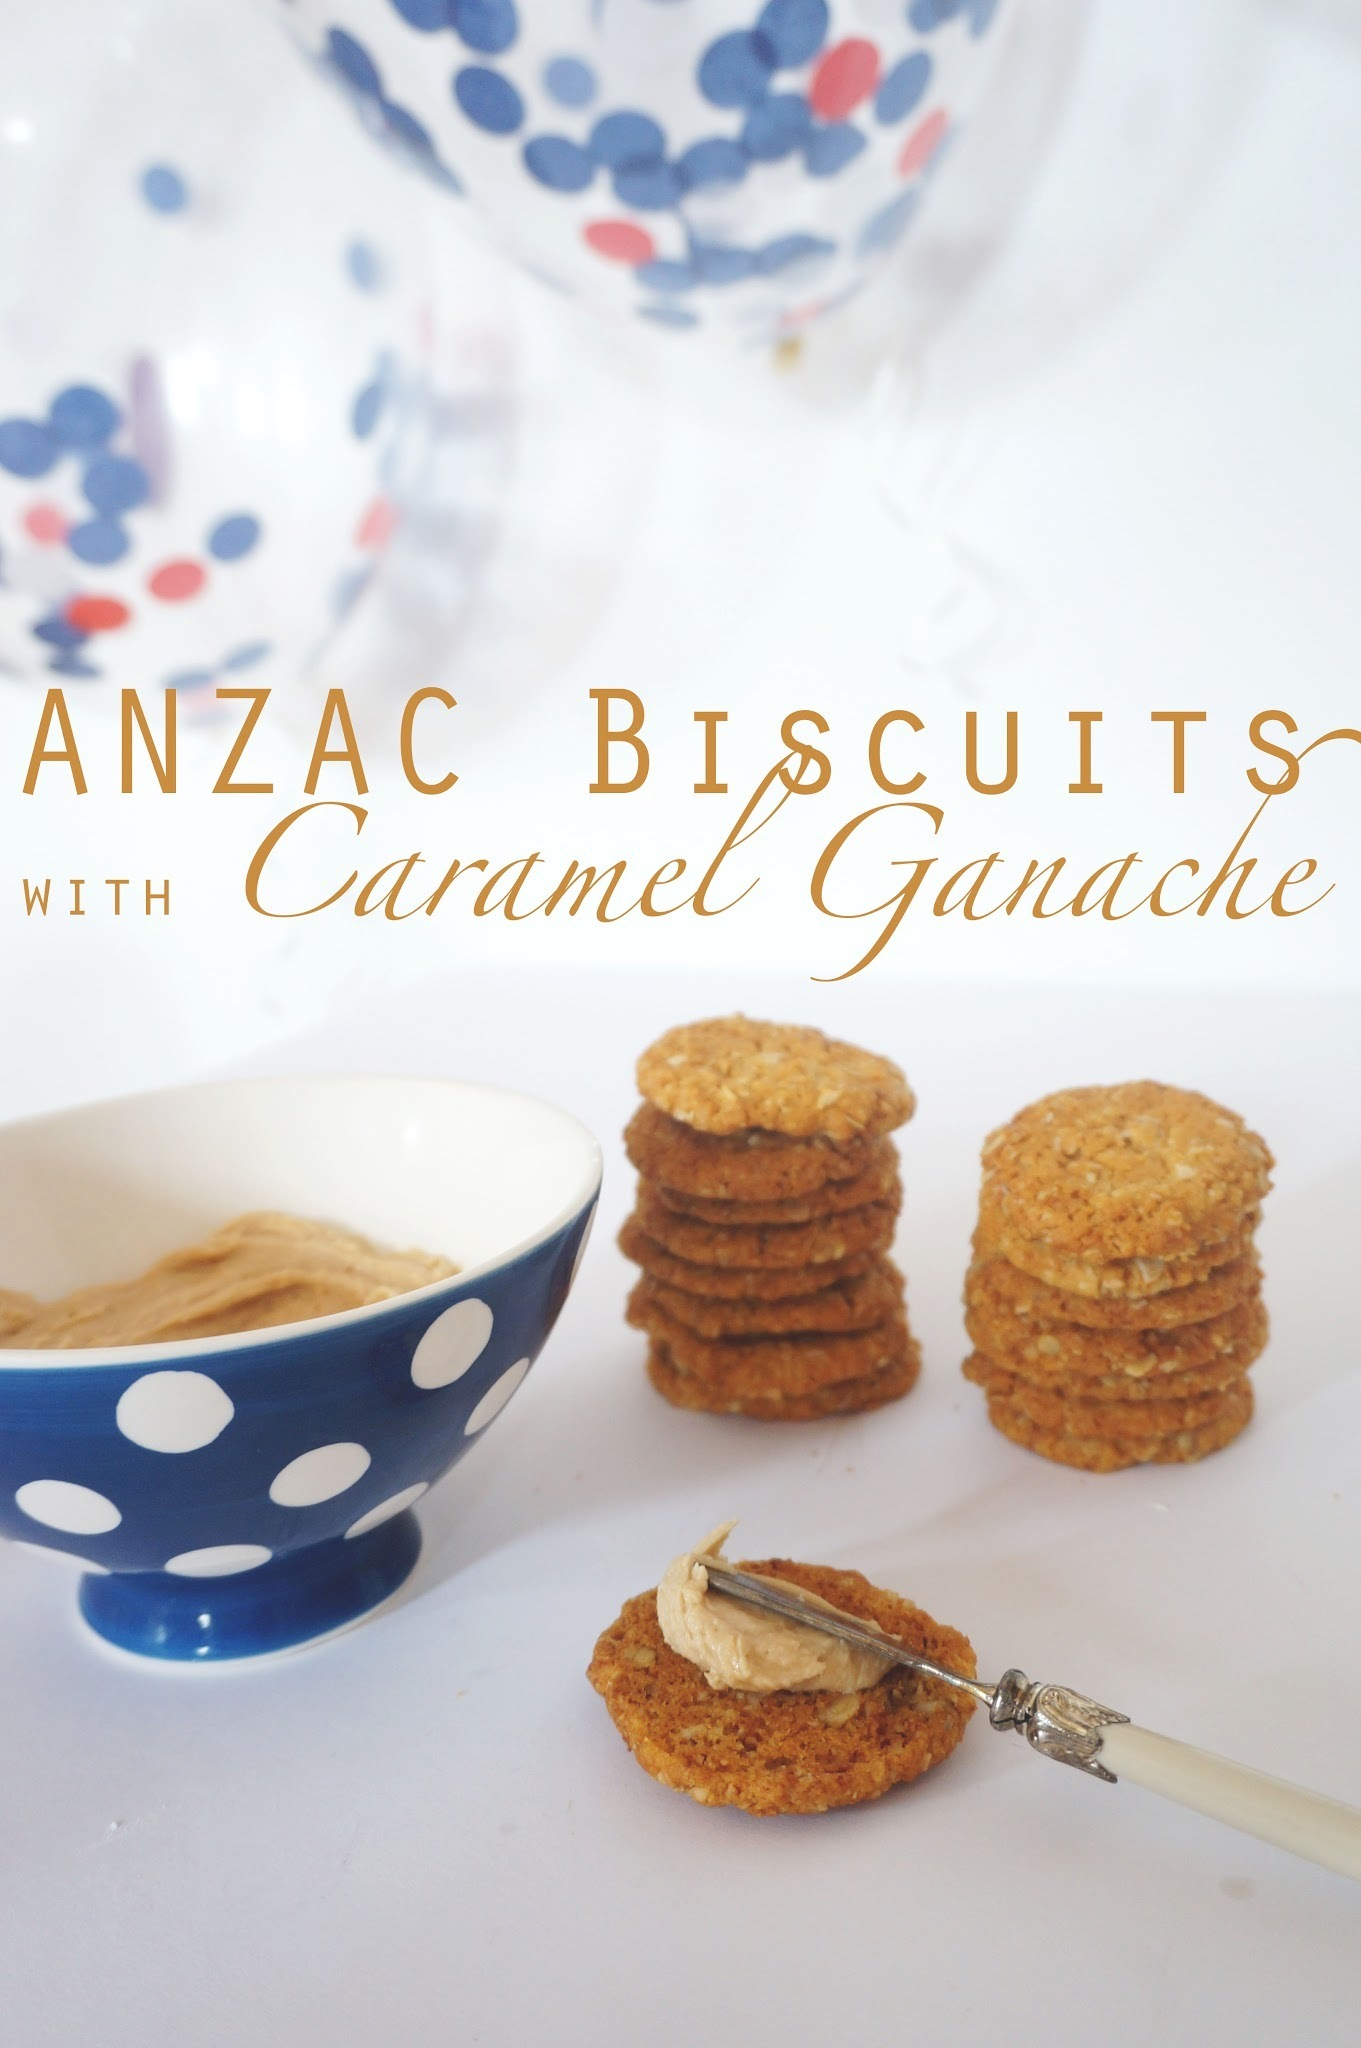 ANZAC Biscuits with Caramel Ganache